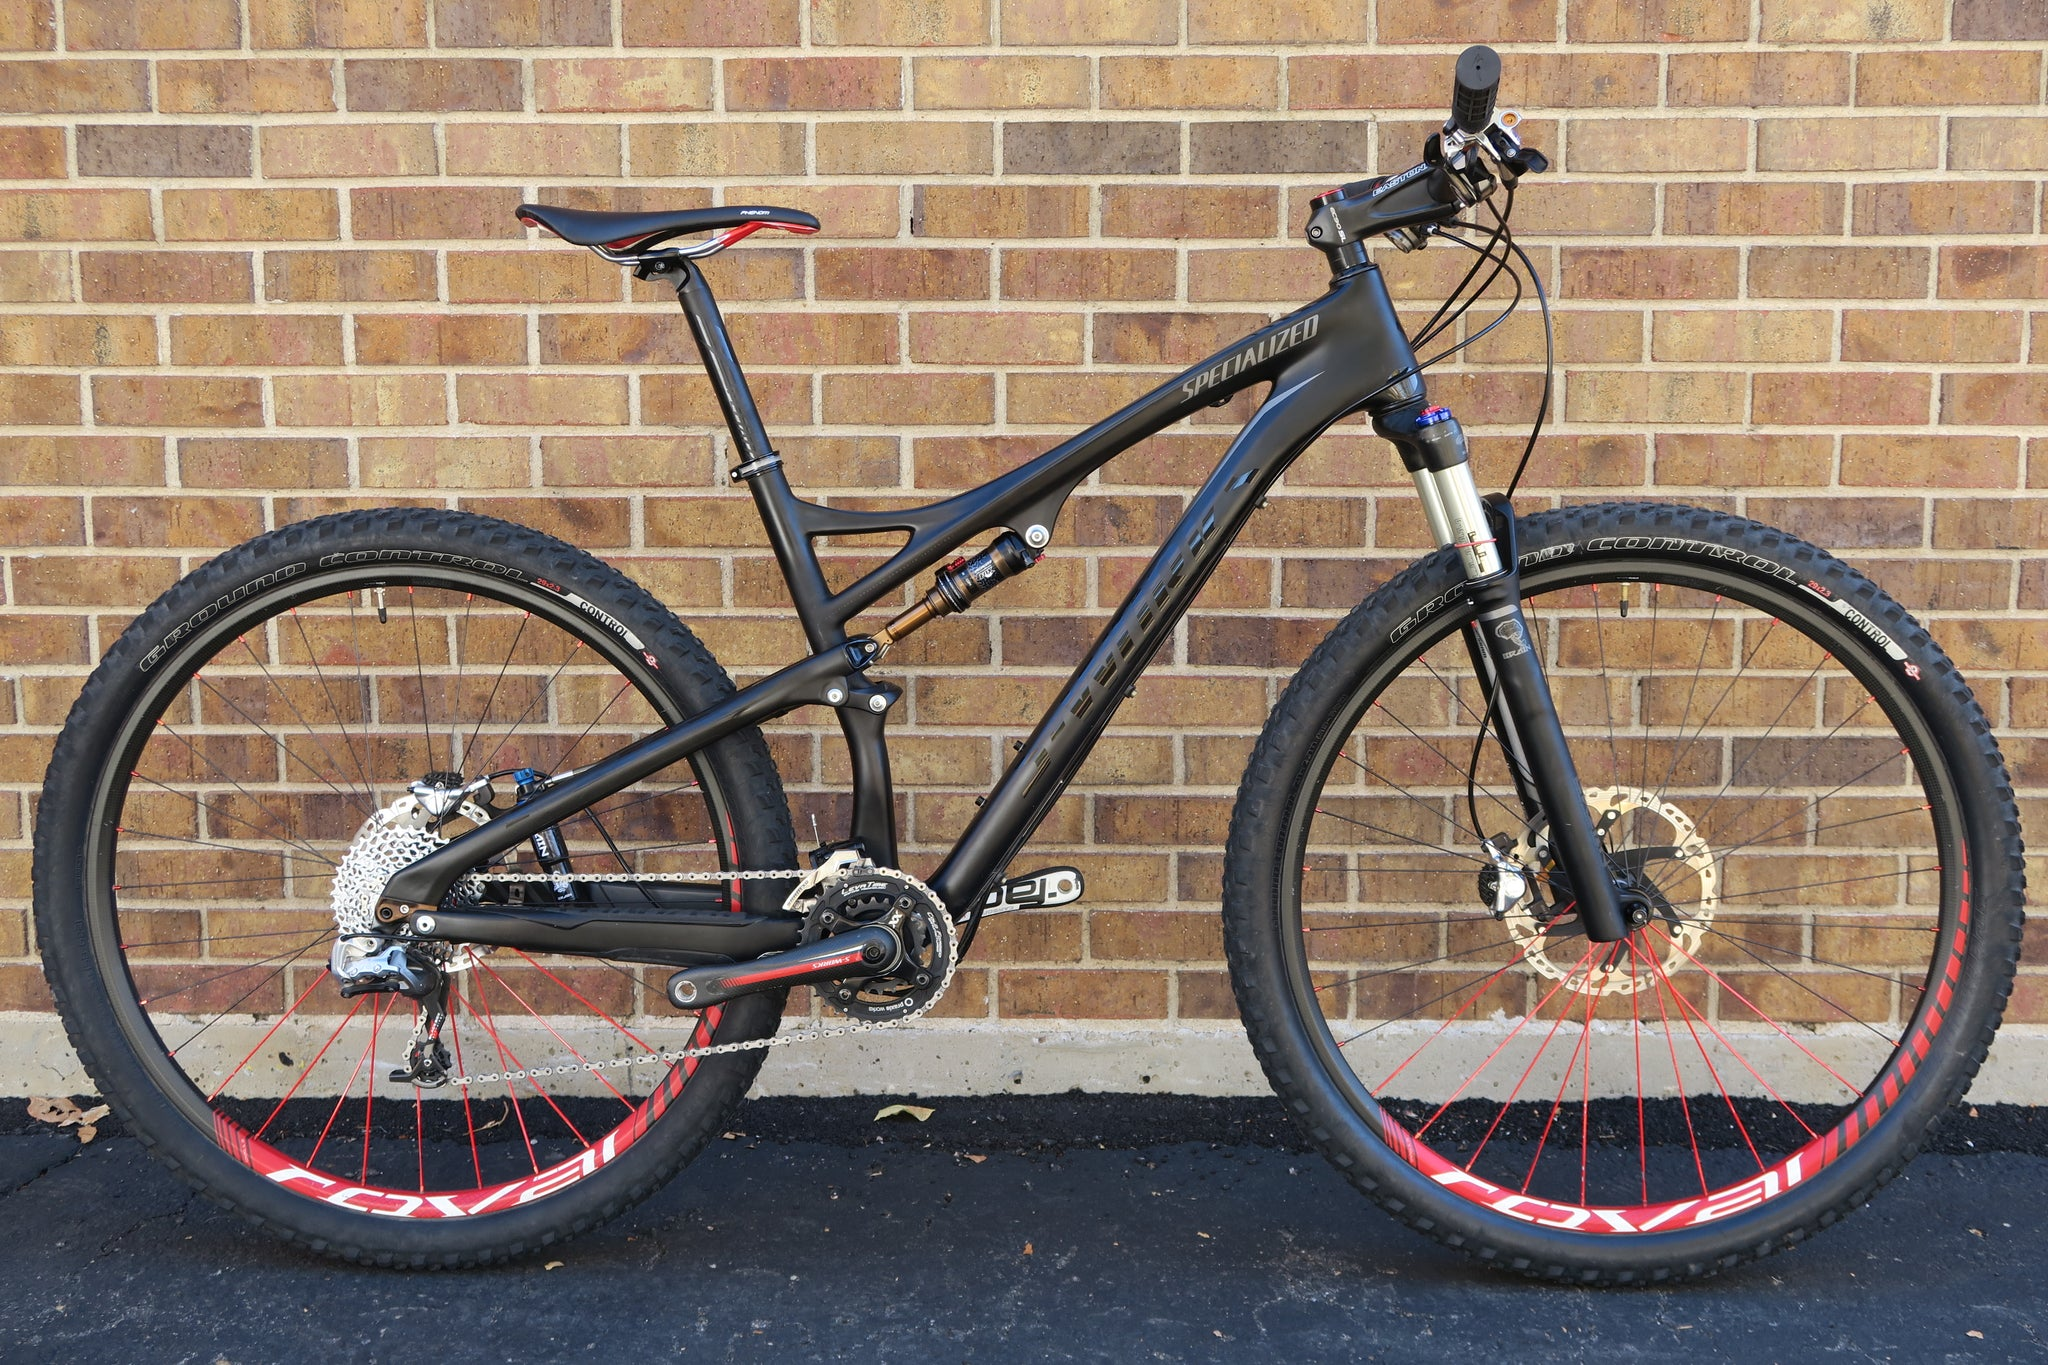 2013 SPECIALIZED S-WORKS EPIC CARBON 29